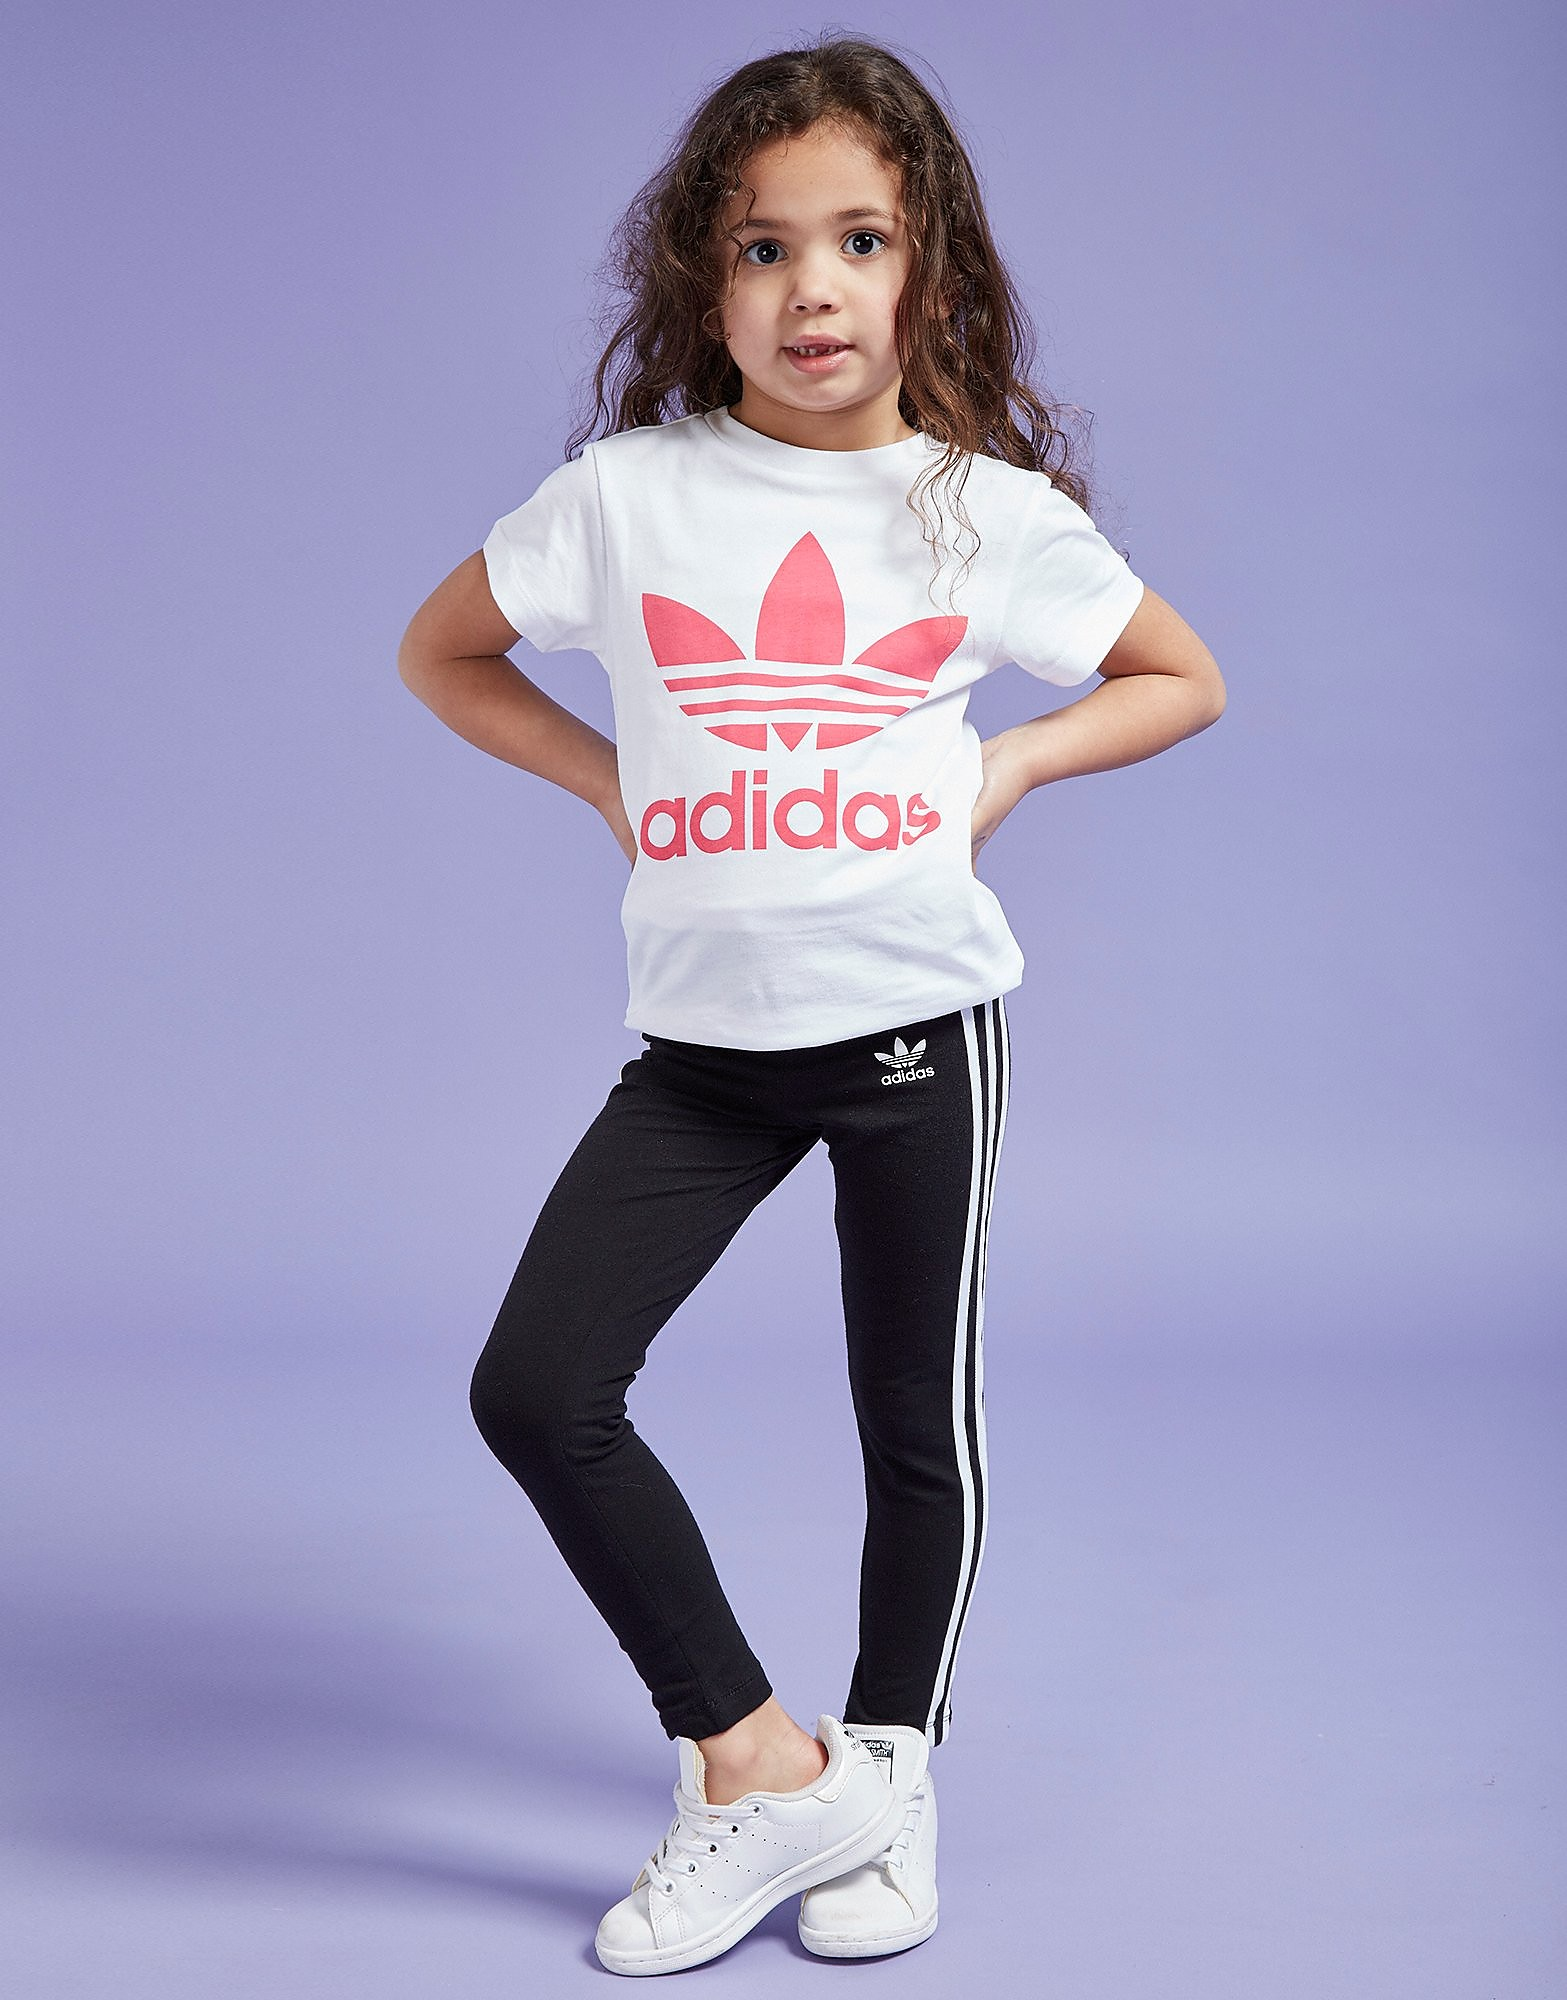 adidas Originals Girls' 3- Stripes Leggings Children